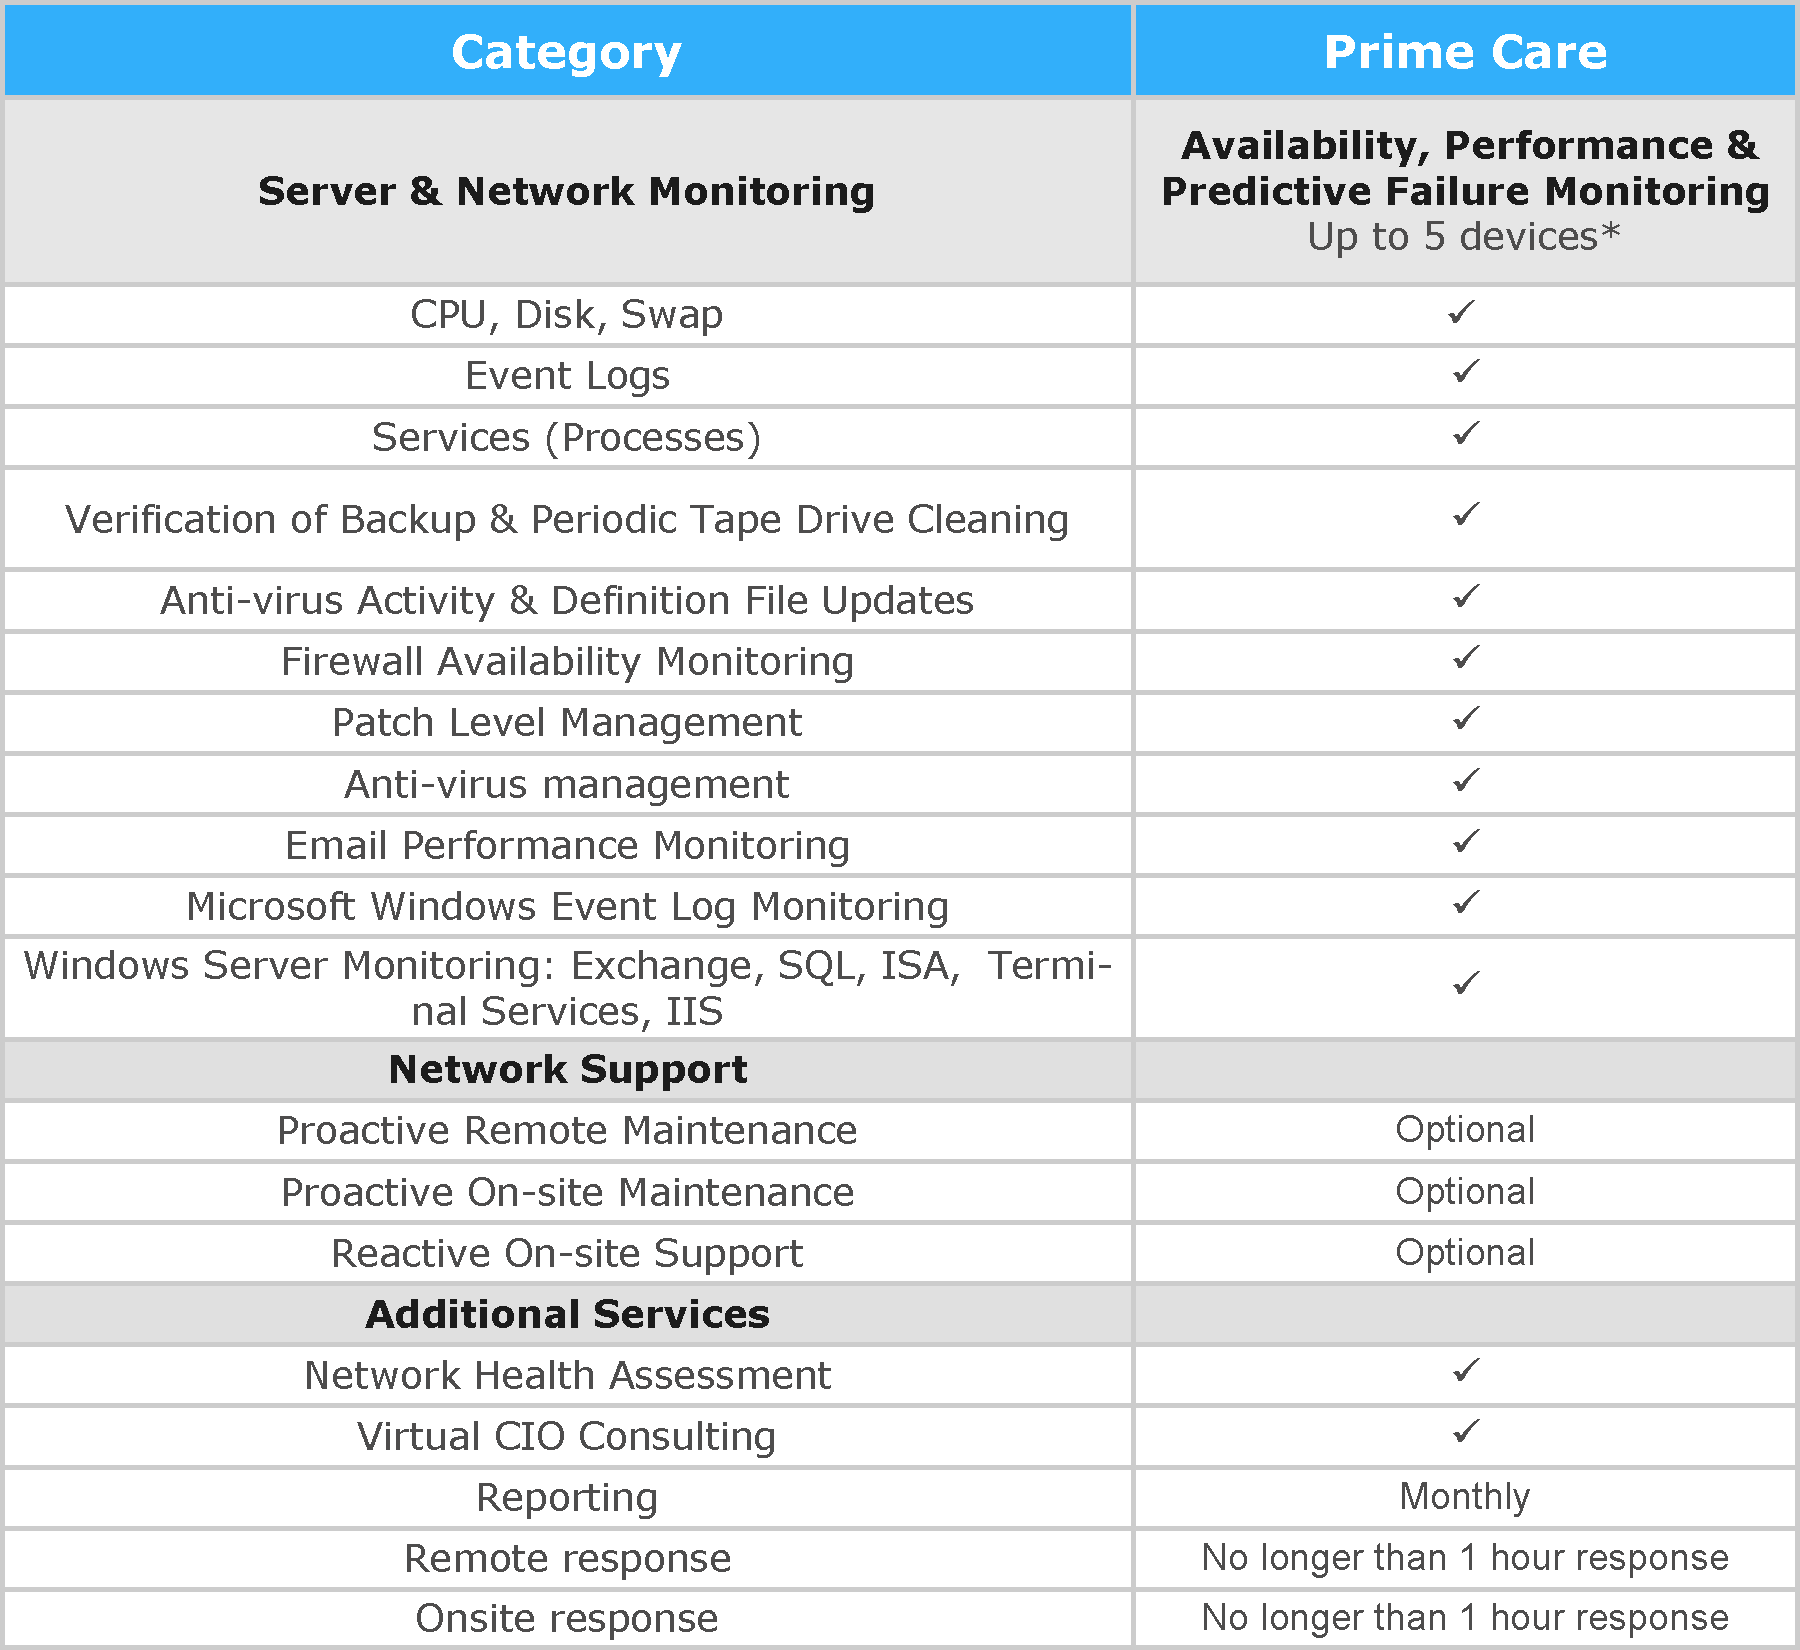 Managed Services Grid